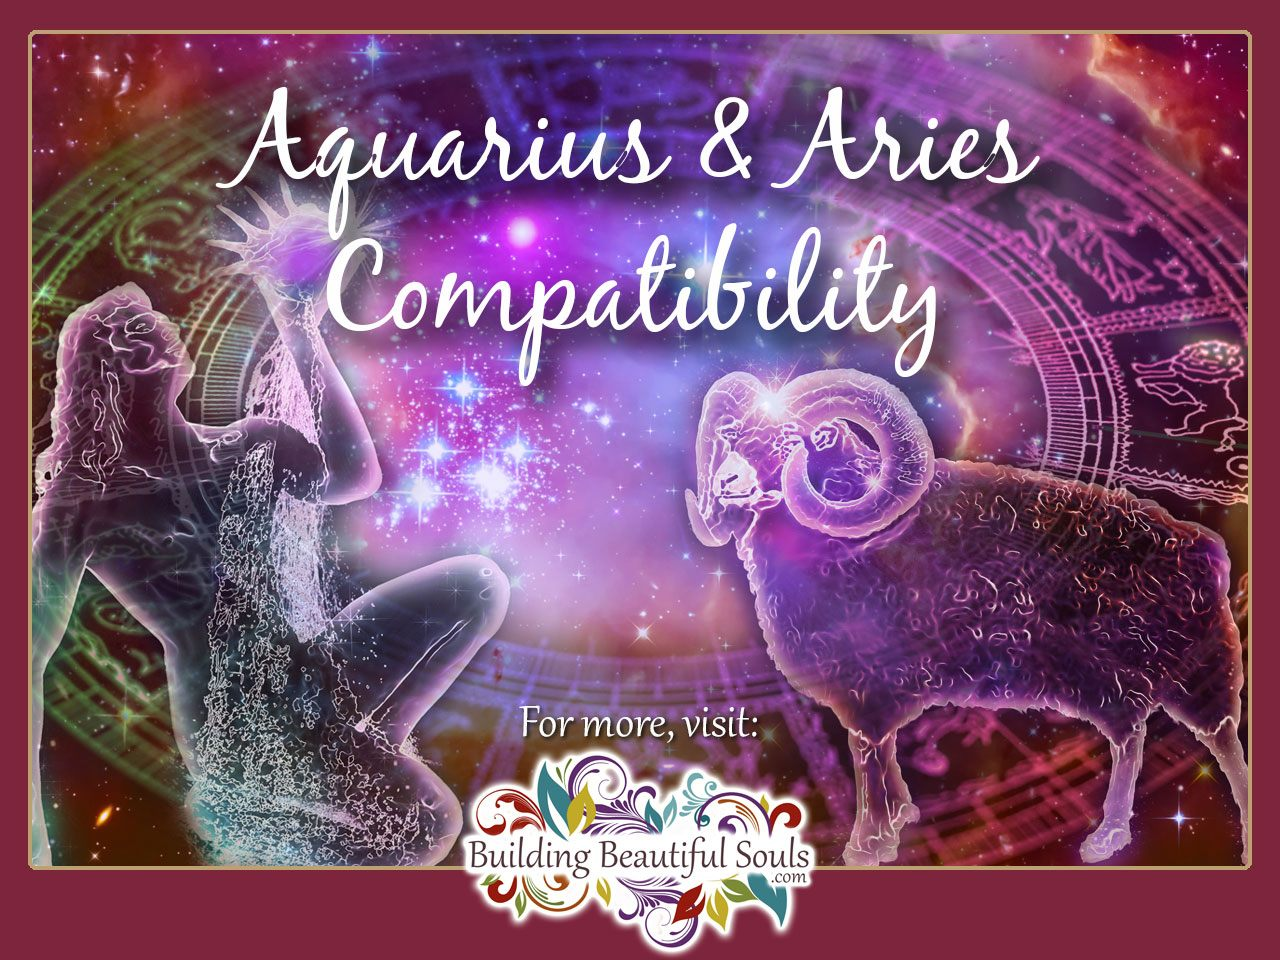 Aquarius and Aries 1280x960